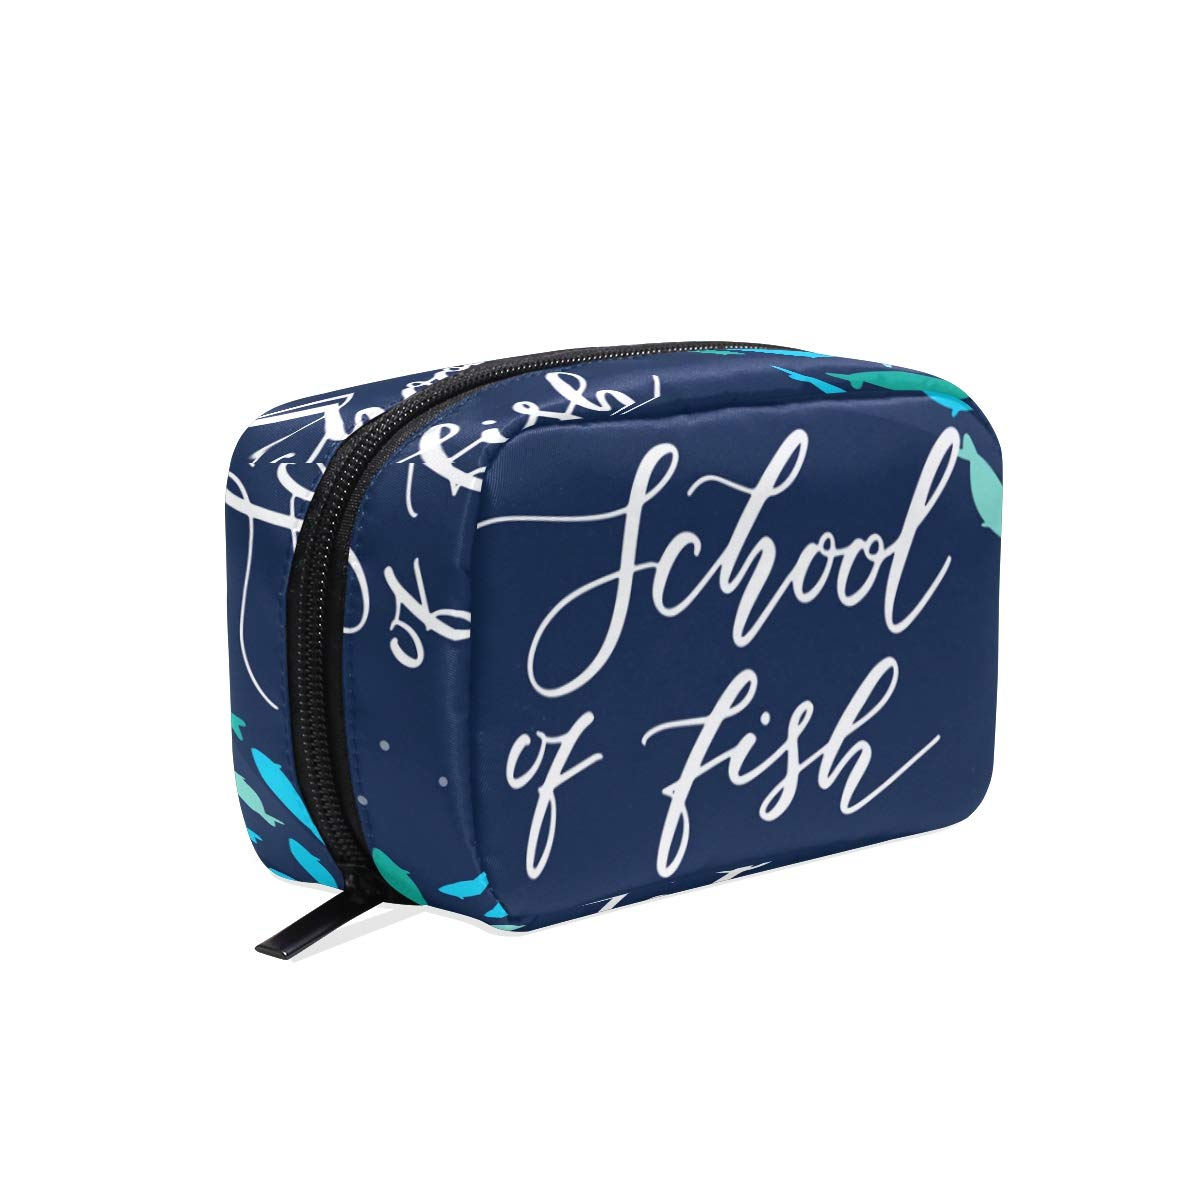 ILEEY School Of Fishes Cosmetic Pouch Clutch Makeup Bag Travel Organizer Case Toiletry Pouch for Women